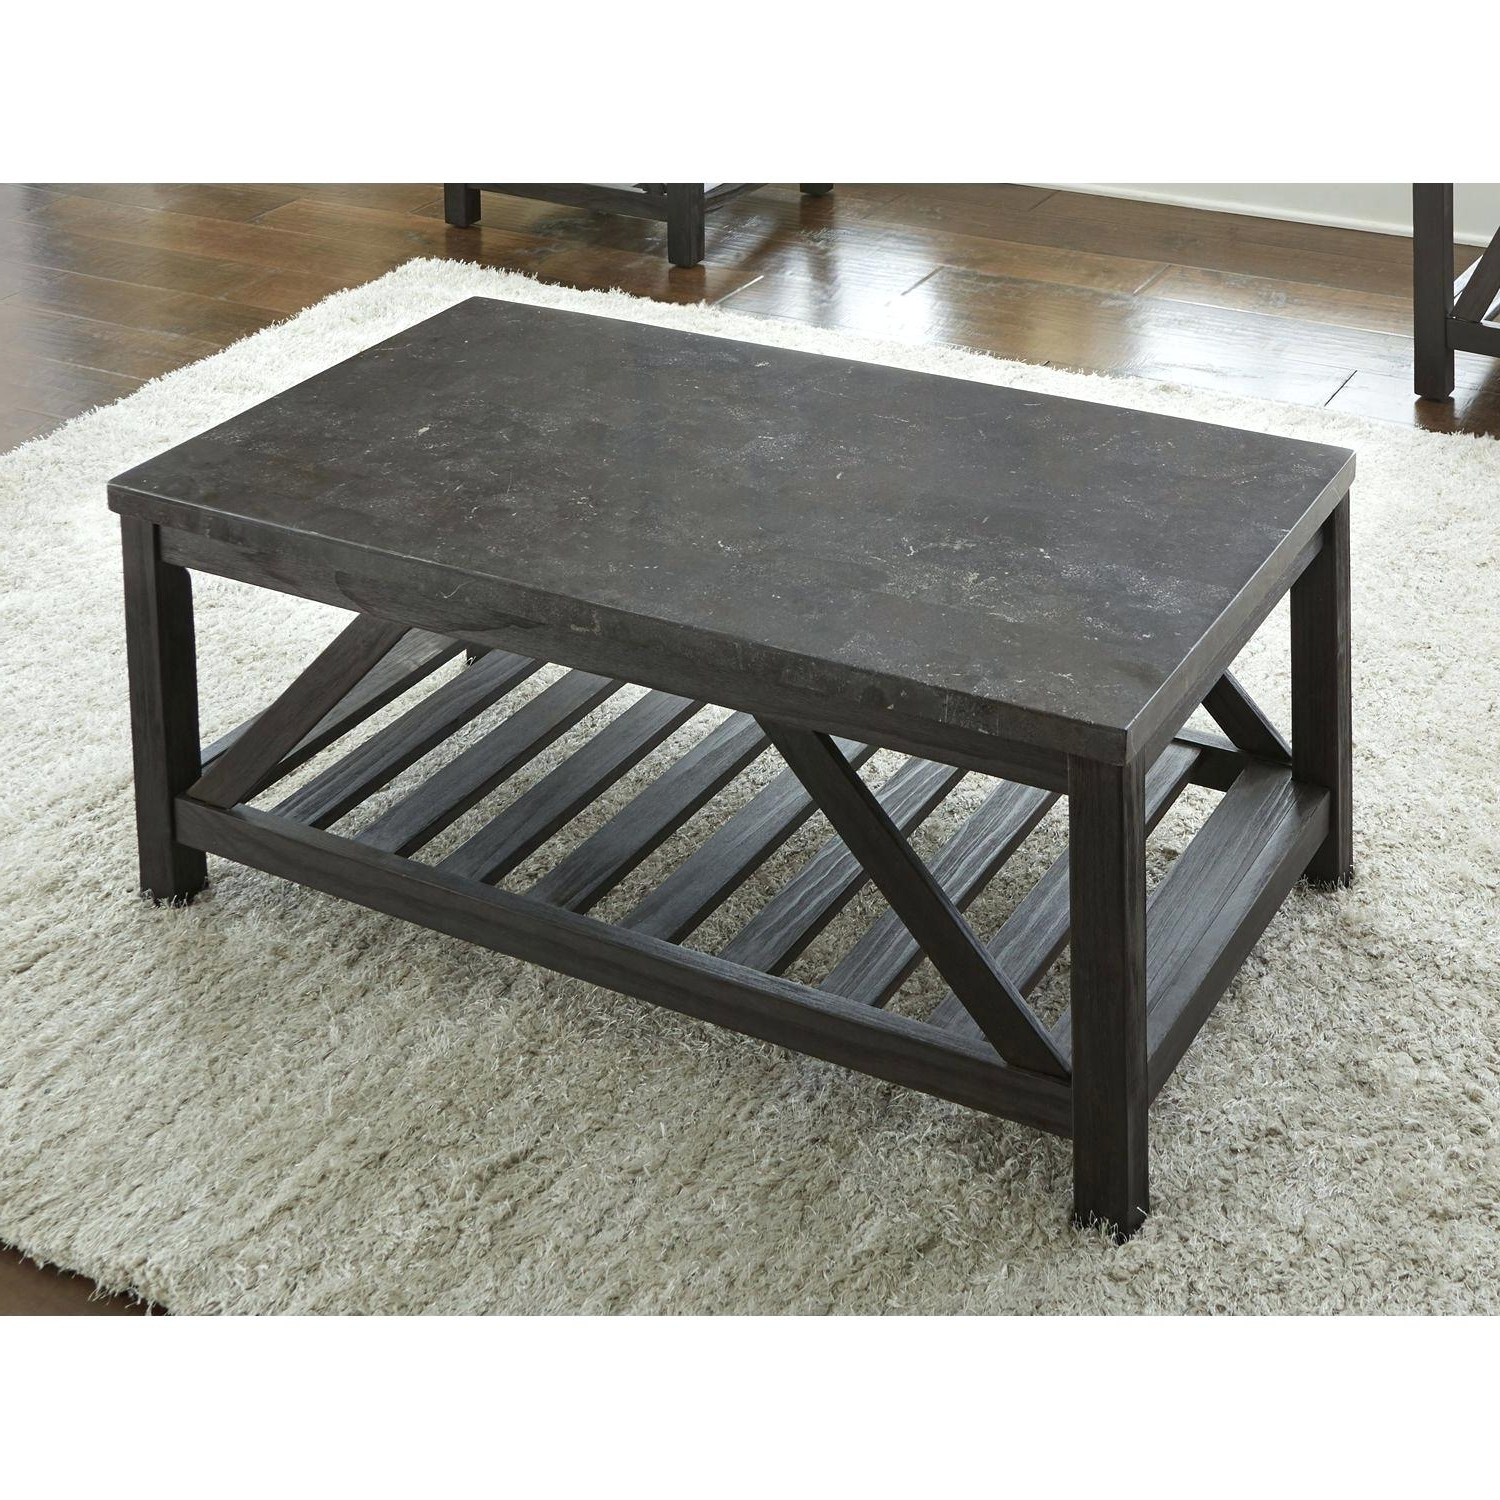 Bluestone Top Coffee Table Black Coffee Table Lift Up Top Intended For Most Recently Released Bluestone Rustic Black Coffee Tables (View 2 of 20)